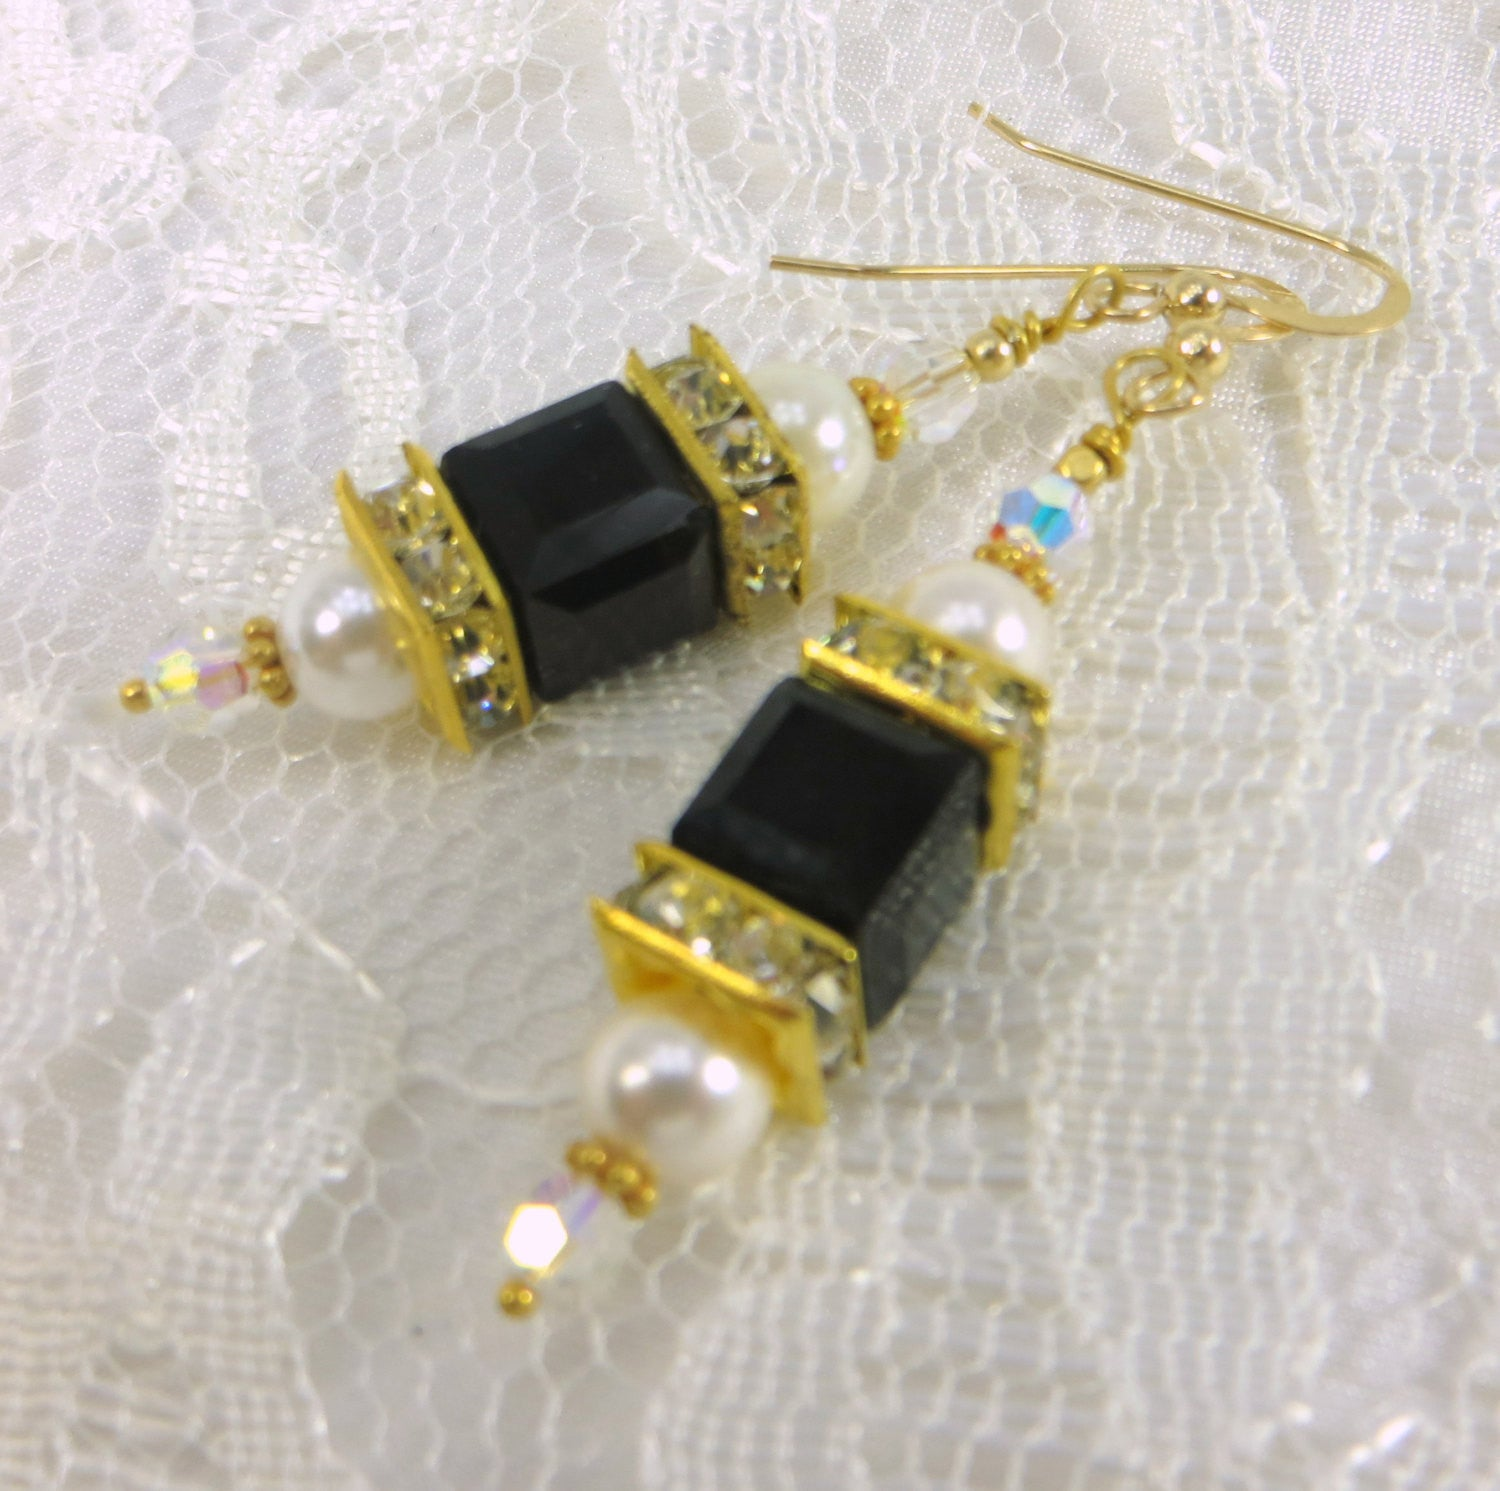 Swarovski Cube Lantern Earrings in Black and White Pearl on 22k Bali Gold Earring Wires - Odyssey Creations